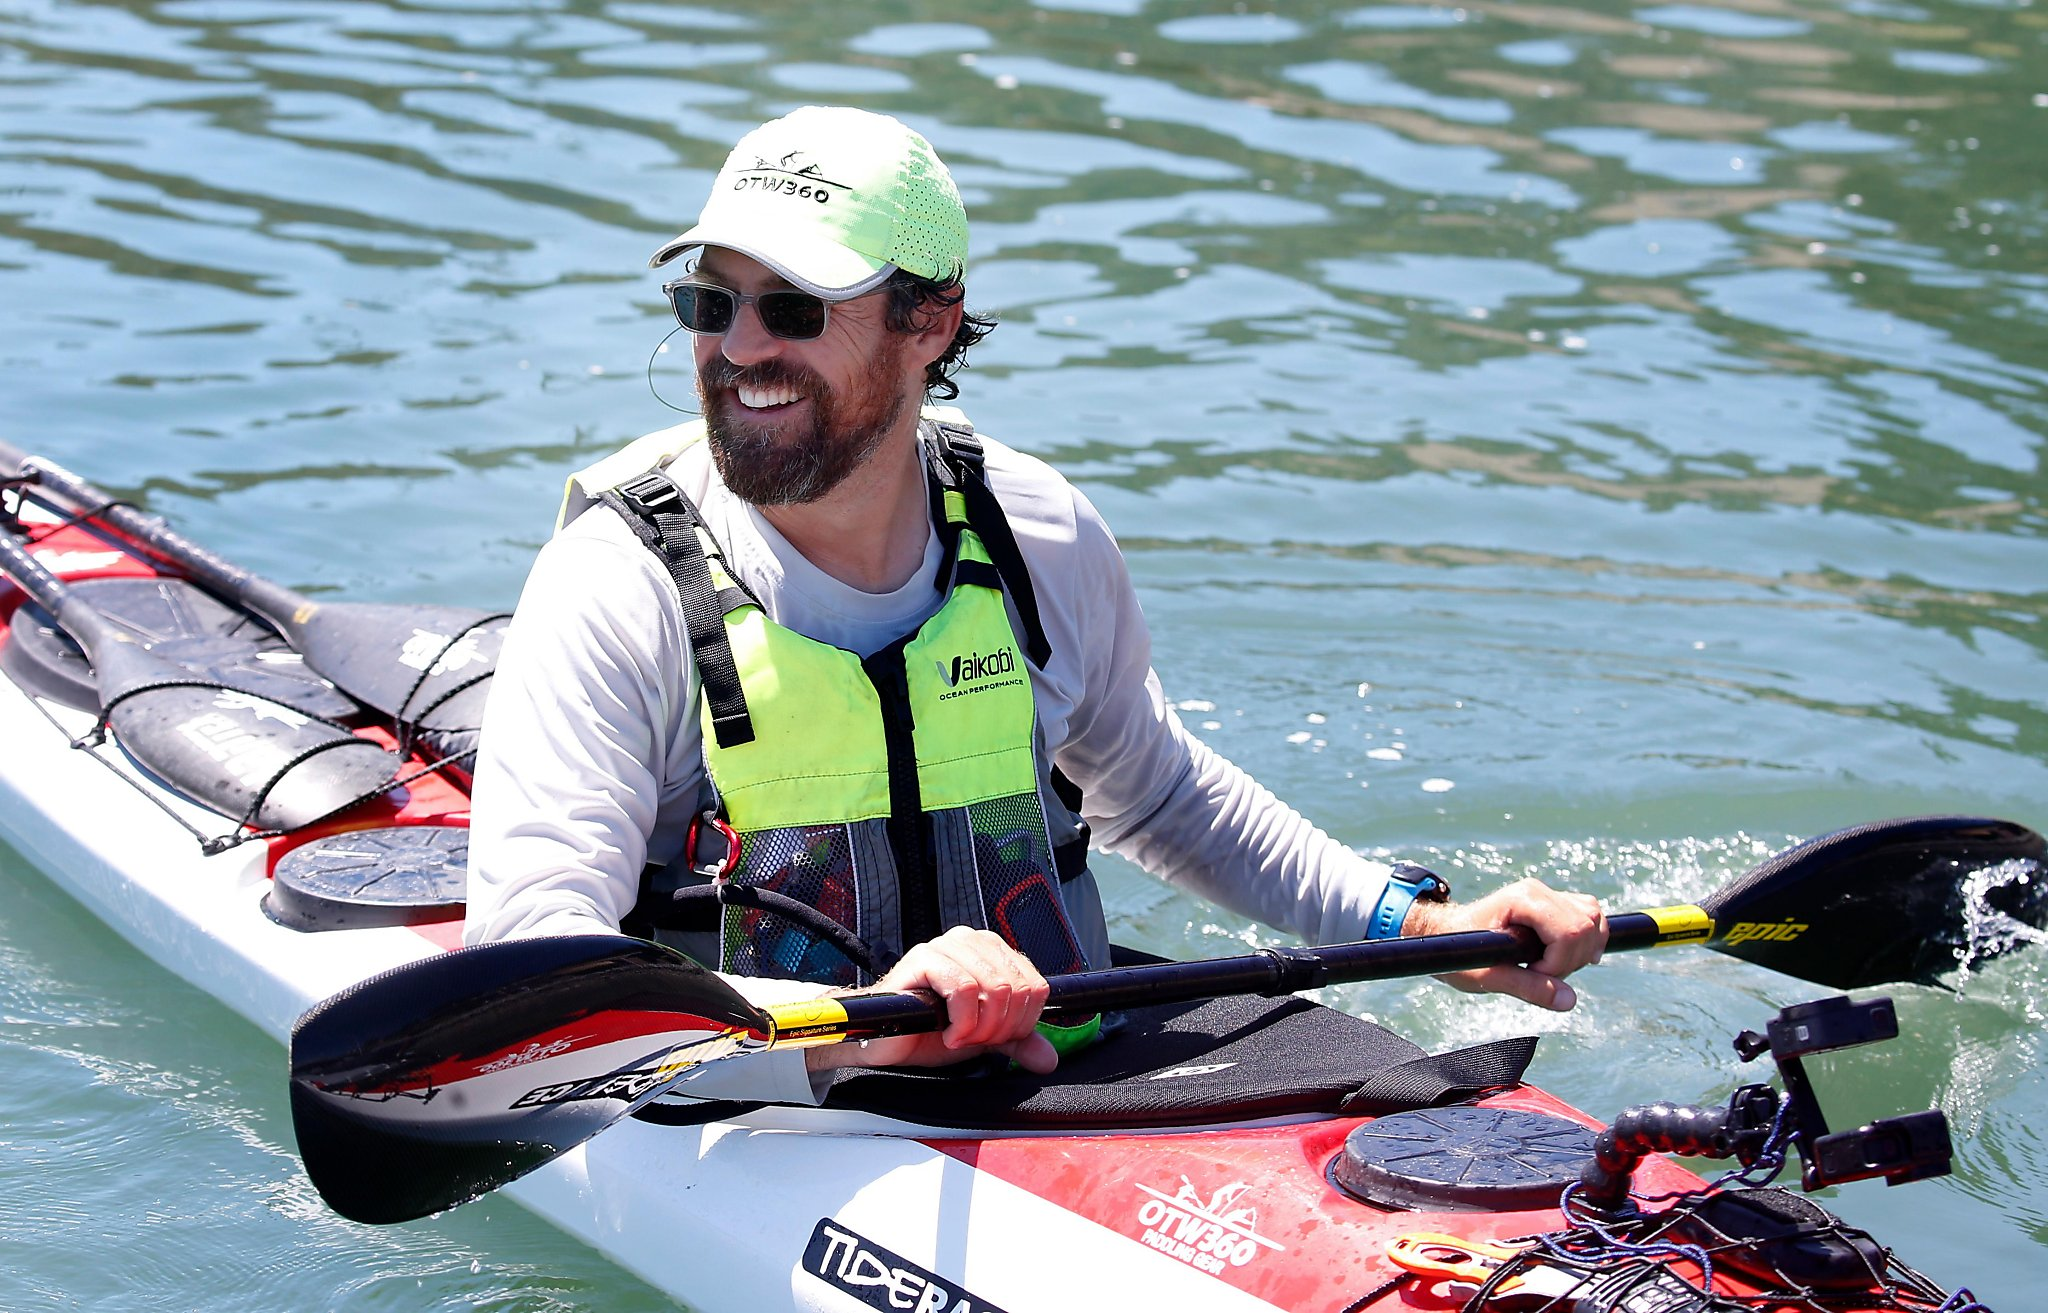 Marin kayaker to embark on epic solo paddle from S.F. to Hawaii